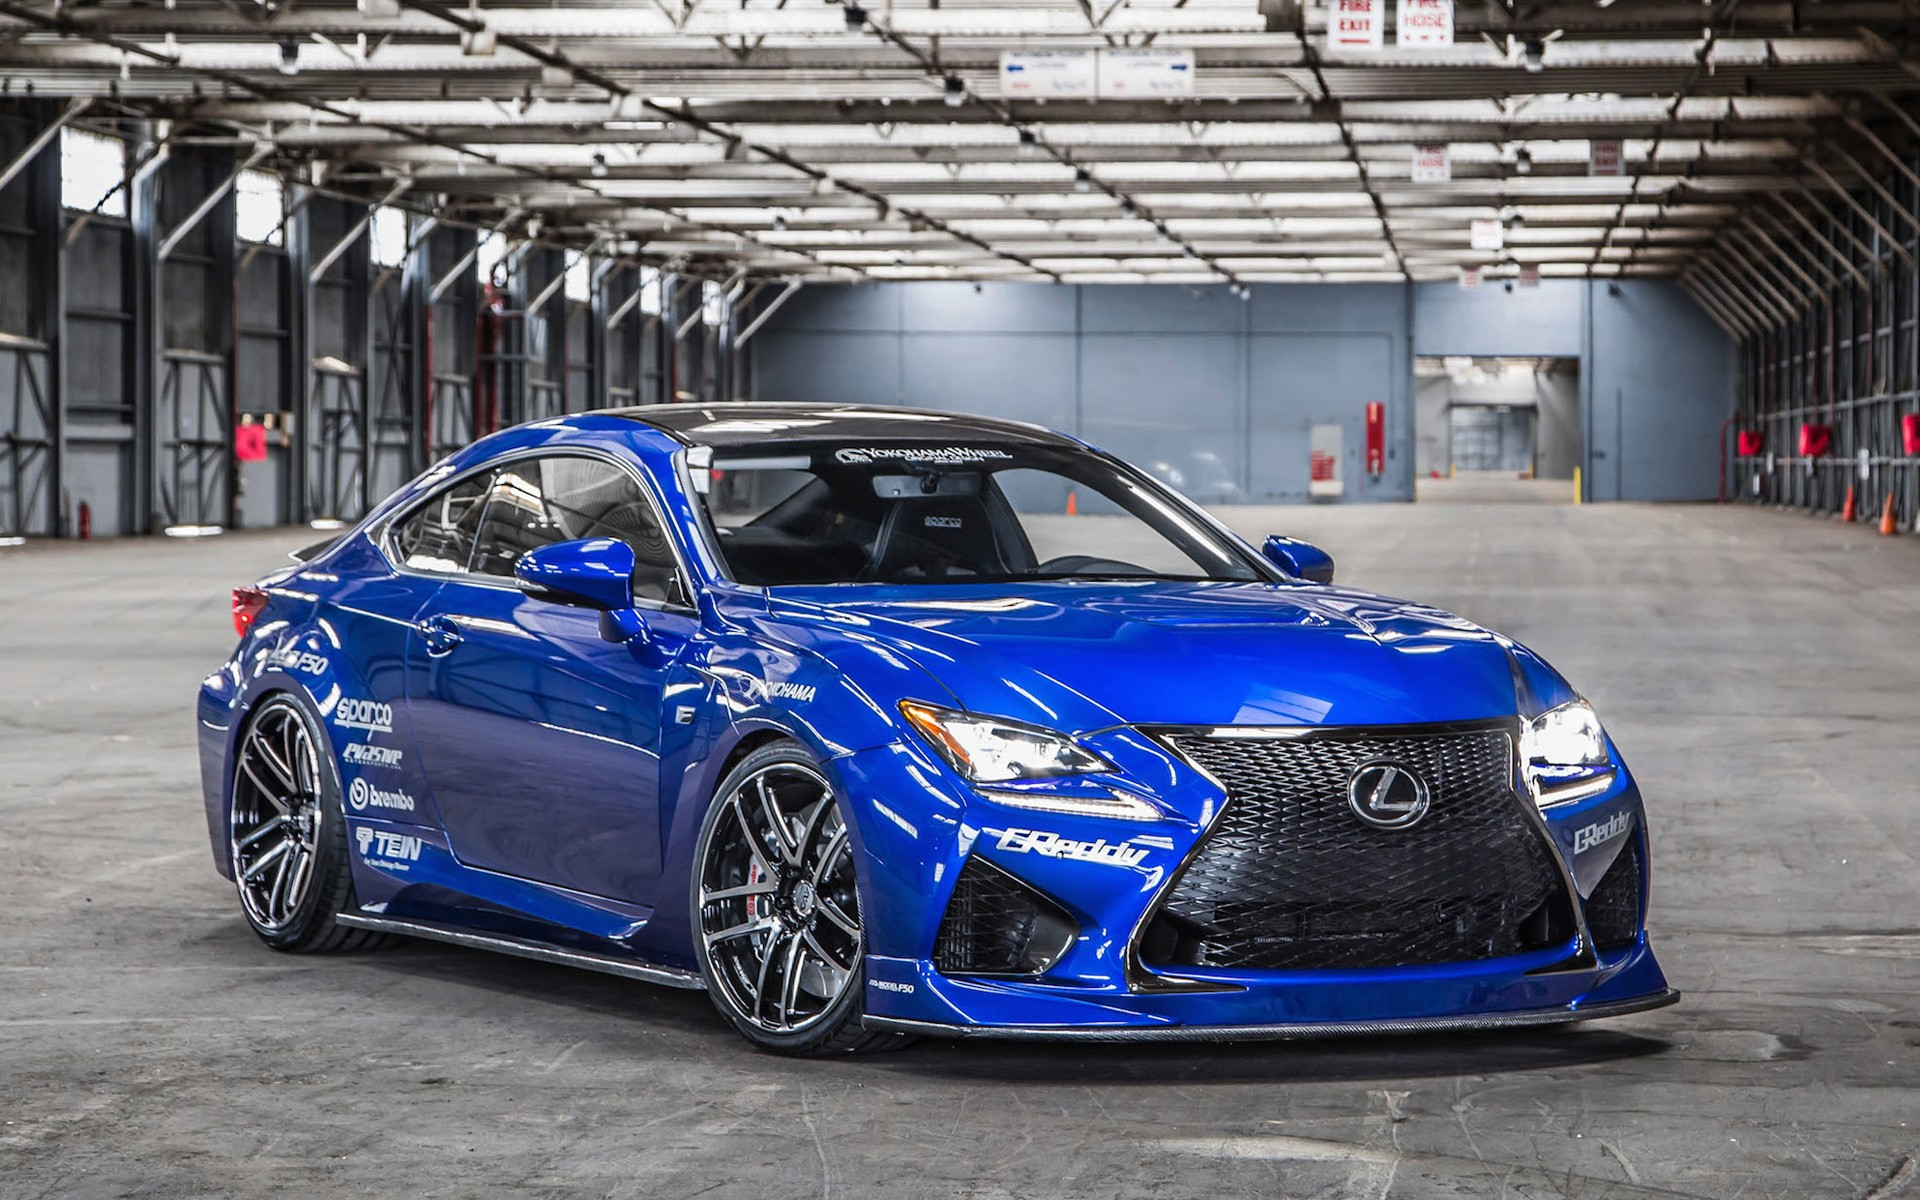 2014 Lexus Rc F By Gordon Ting Wallpaper Hd Car Wallpapers Id 4937